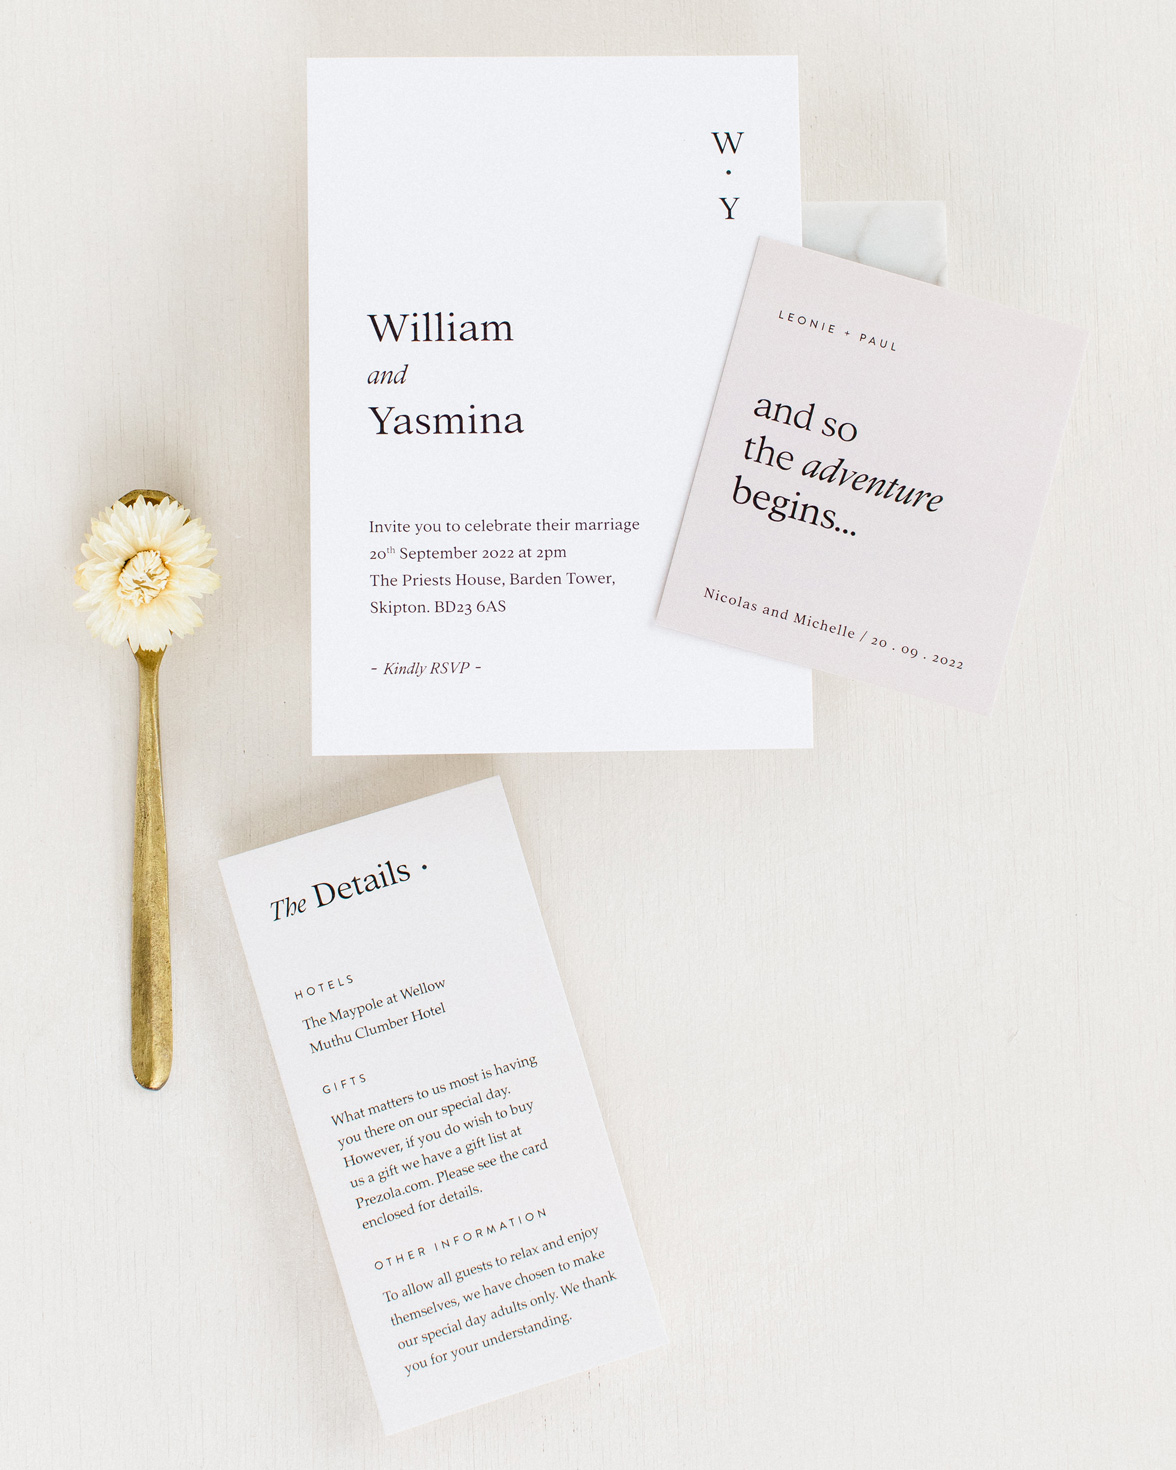 Modern Revival wedding invite, guest name tag and details card